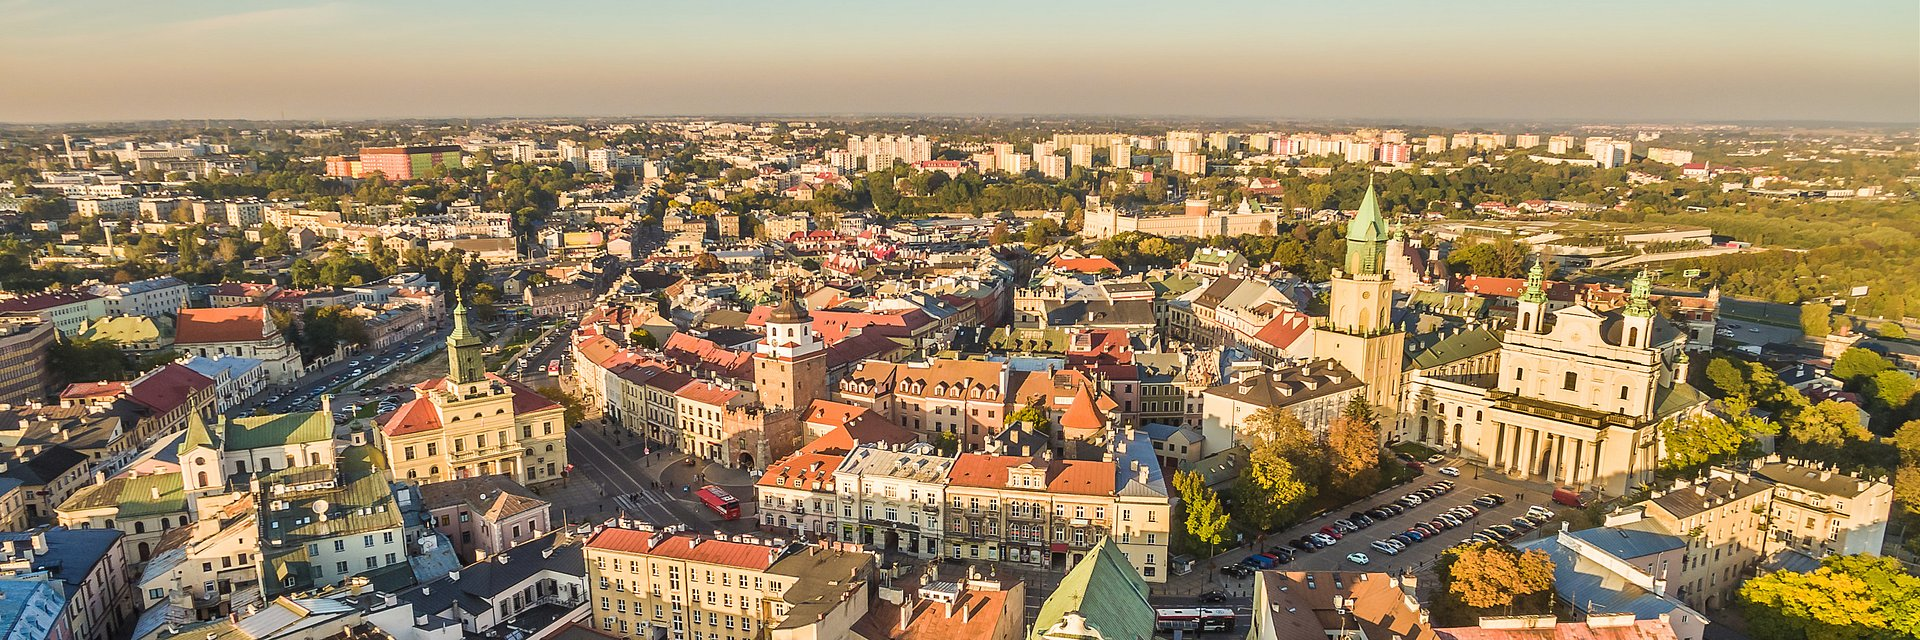 Investors' interest in polish market continues